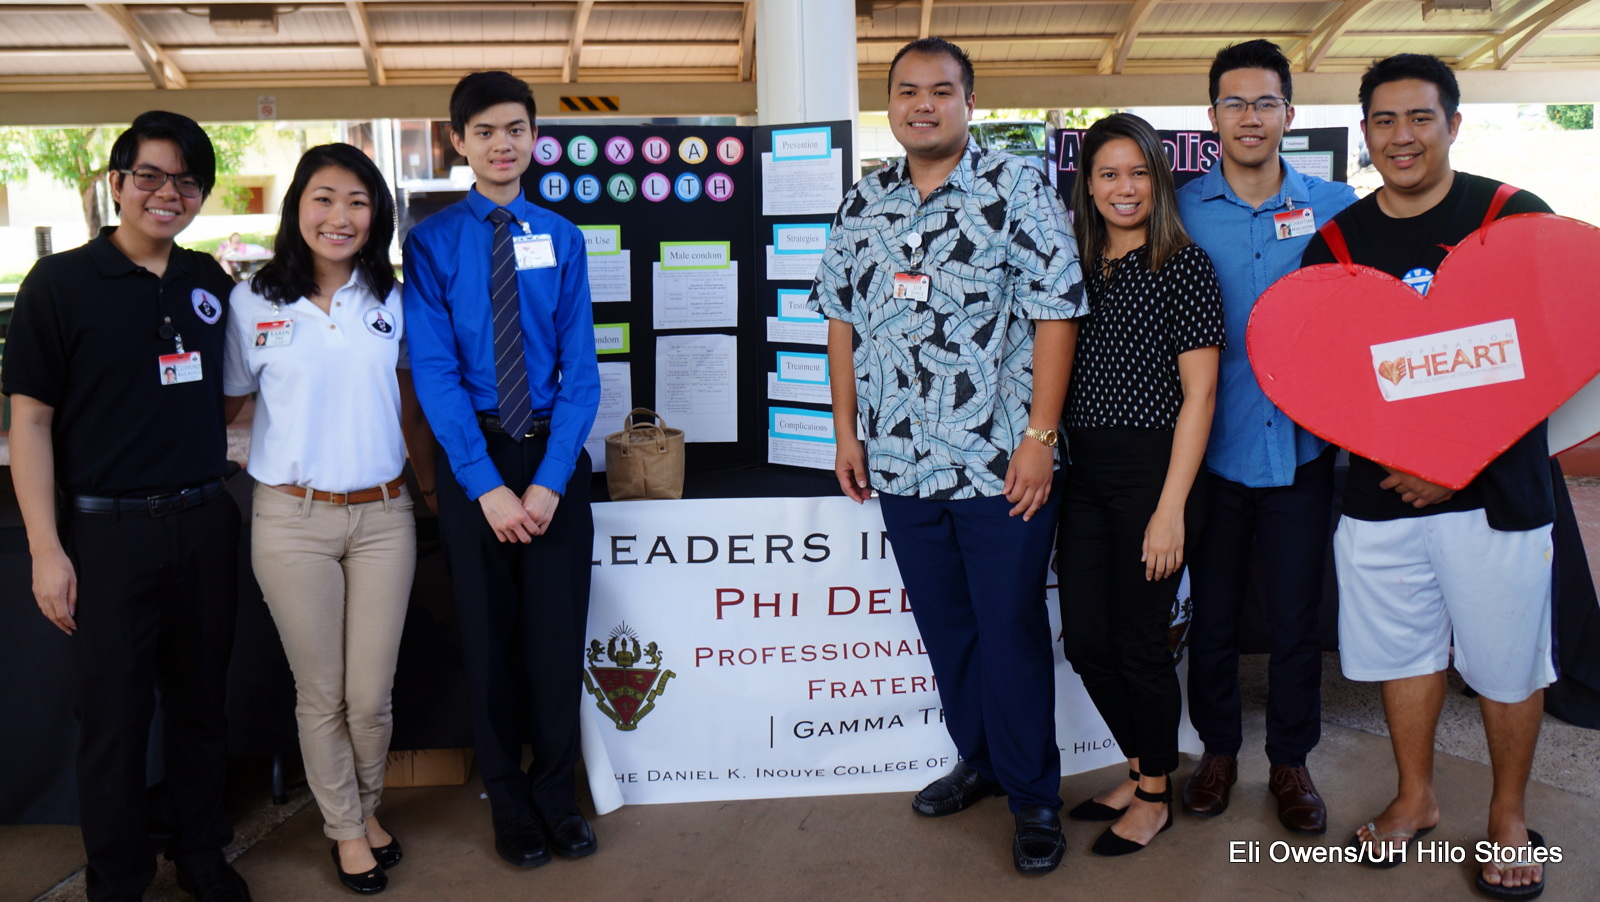 Group photo at informational table by fraternity leaders.